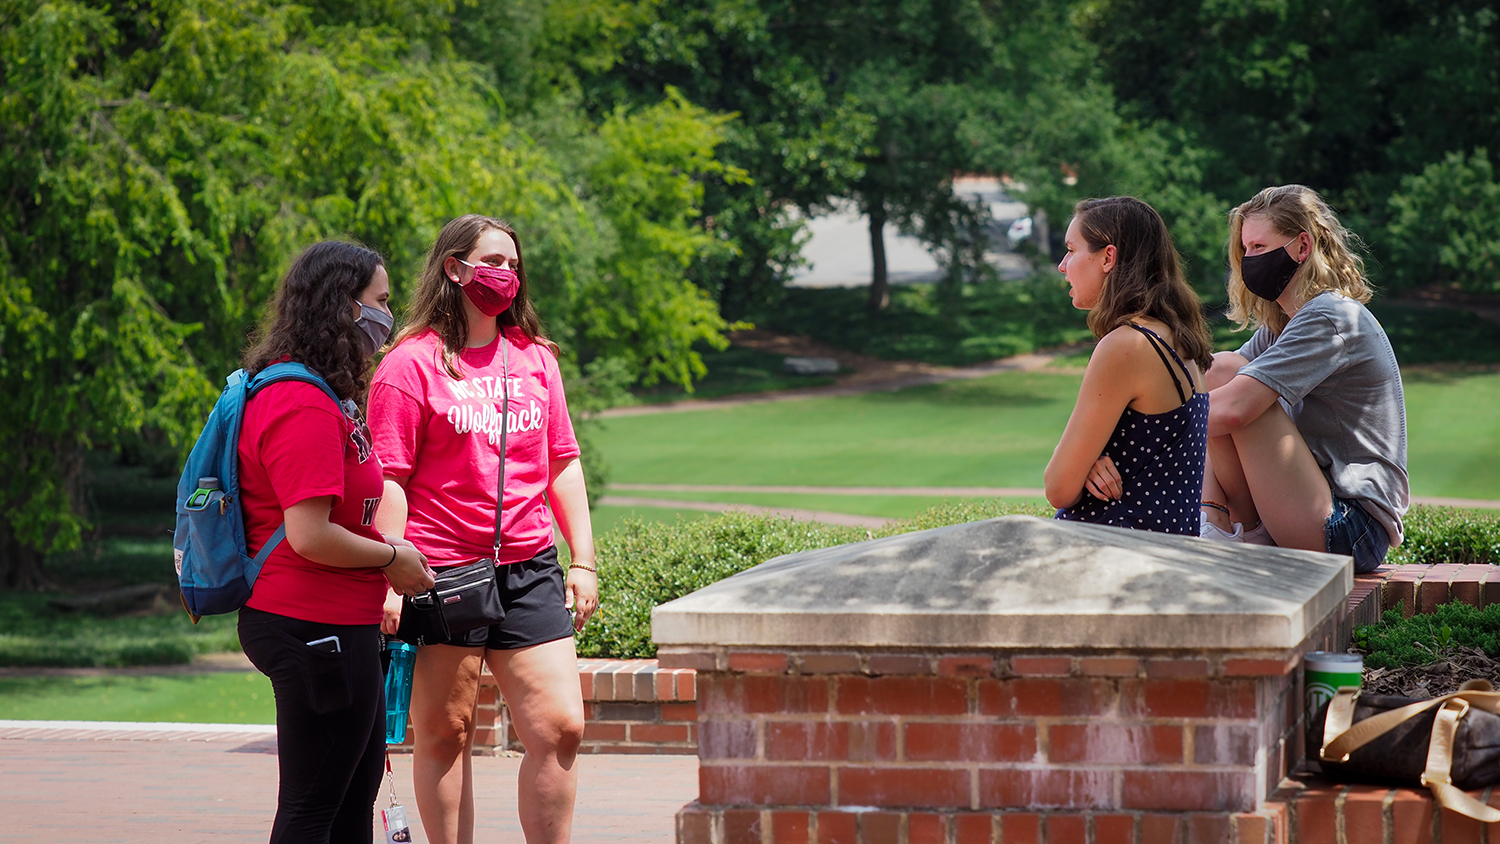 Students chat and make their way on campus during welcome week 2020.